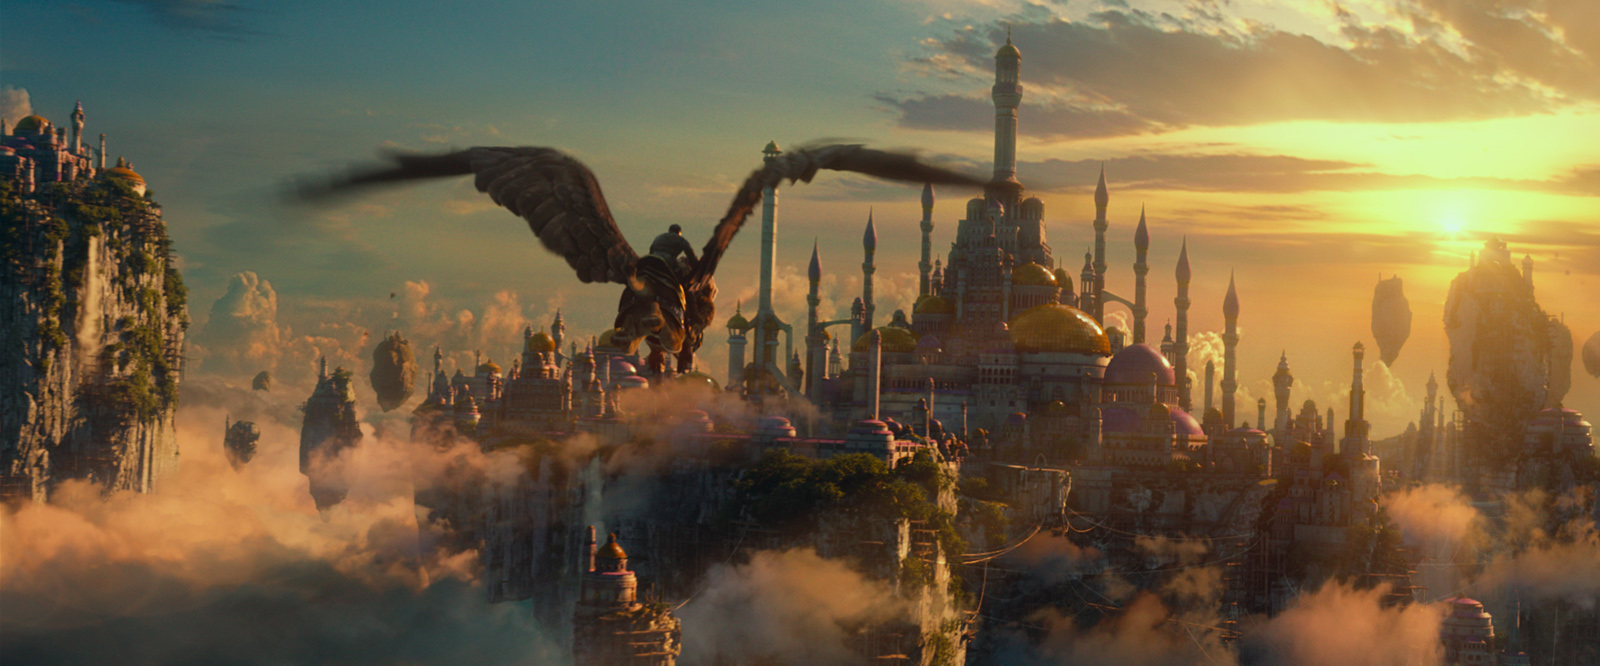 WARCRAFT MOVIE - Image 40 du film Duncan Jones 2016 - Go with the Blog